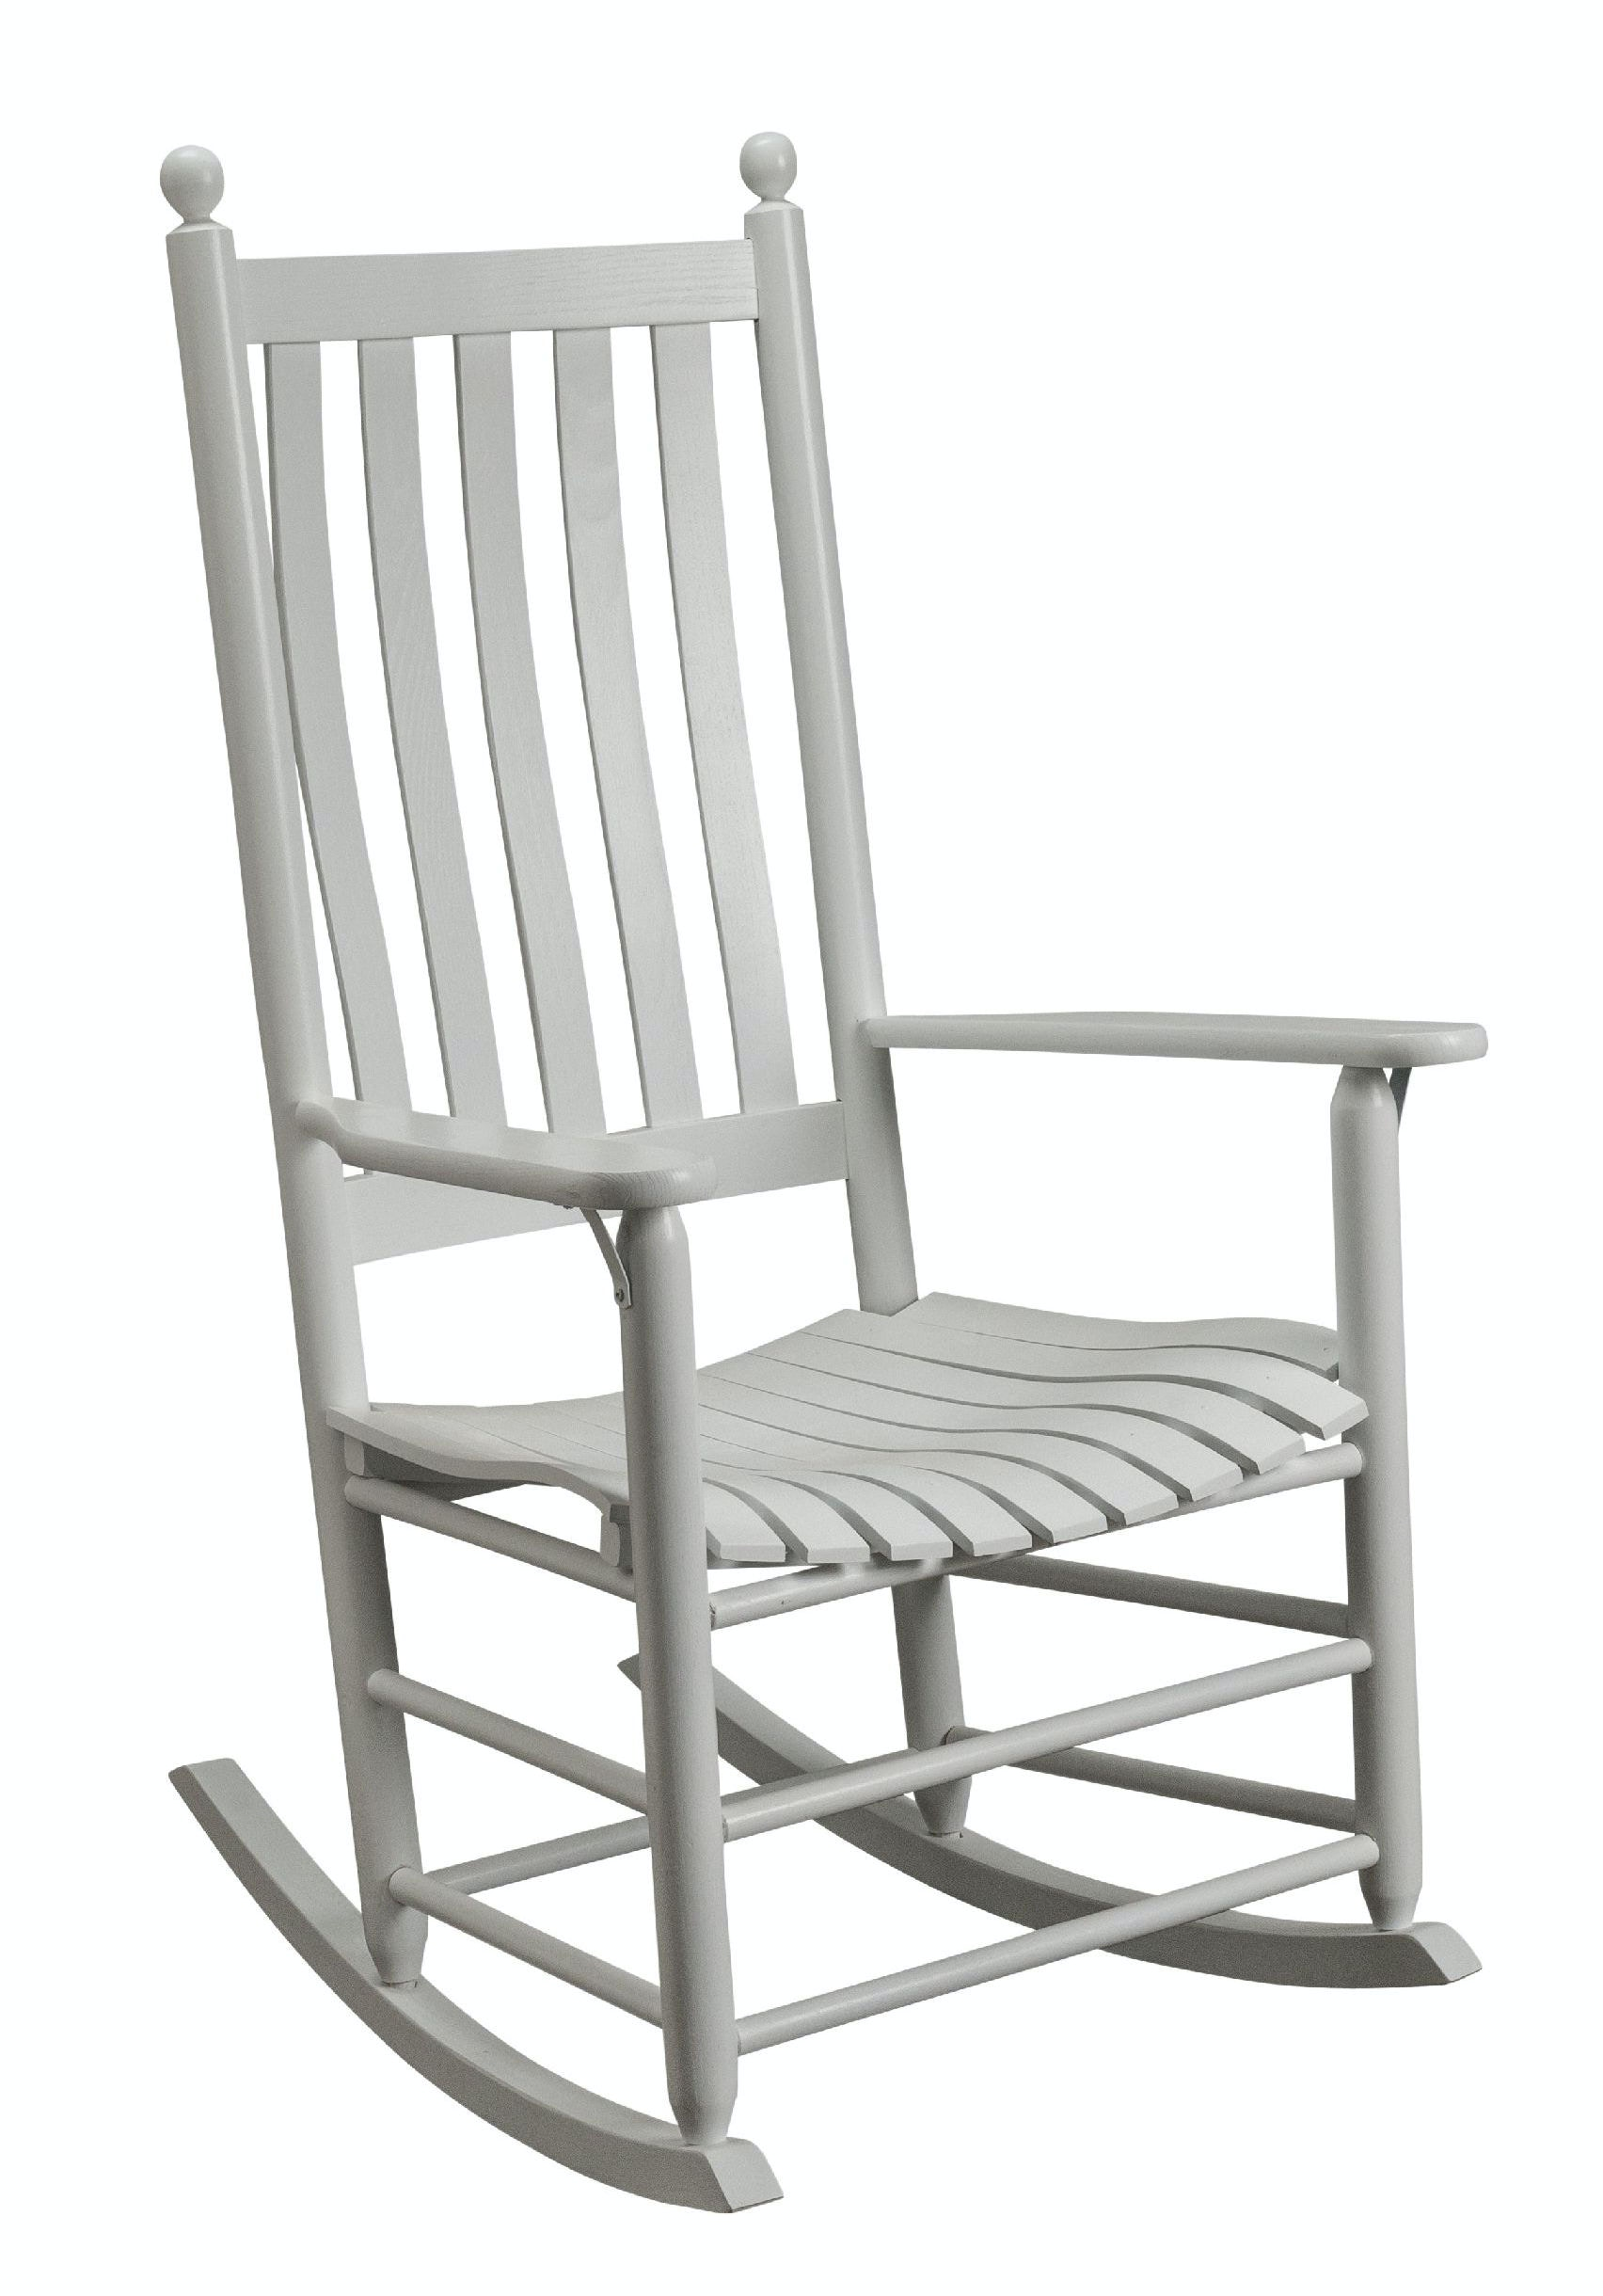 troutman chair company hanging chairs indoor co rocking charlotte raleigh greenville north carolina offering usa made wood l288 970 fire house casual